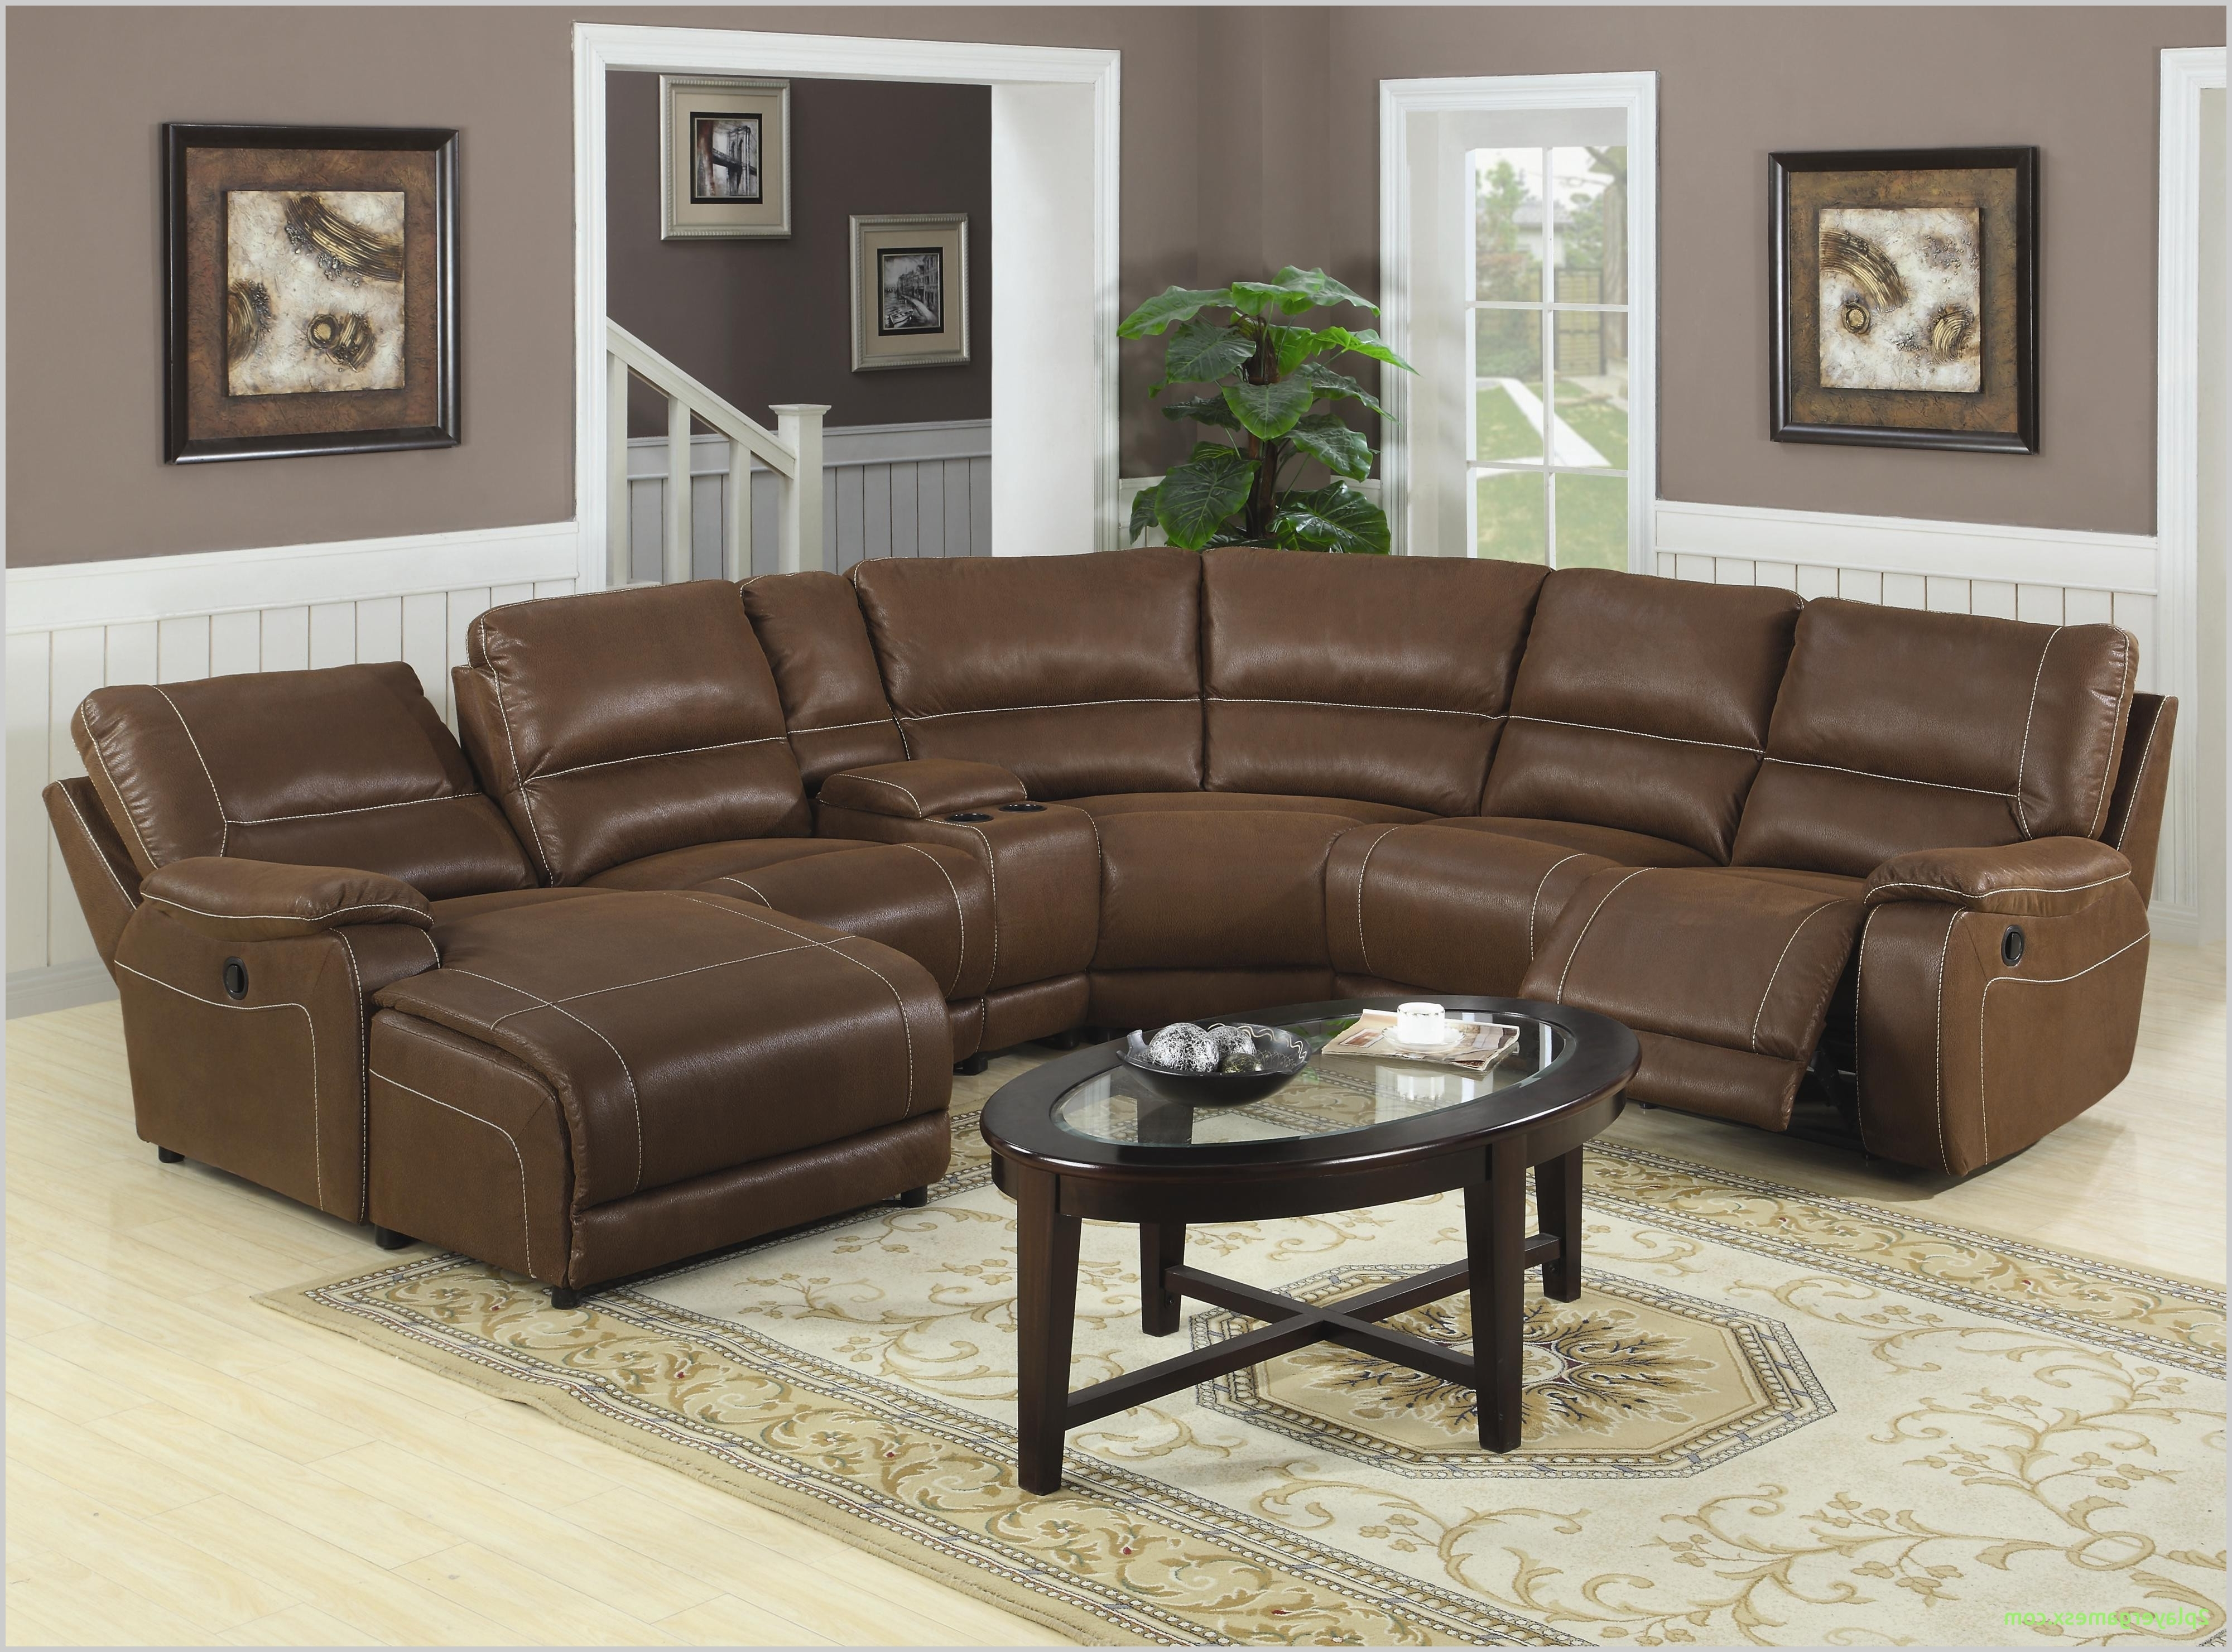 Sectional Sofas For Small Spaces With Recliners Regarding Recent Dual Purpose Furniture Small Spaces Leather Sofas For Apartments (View 15 of 15)